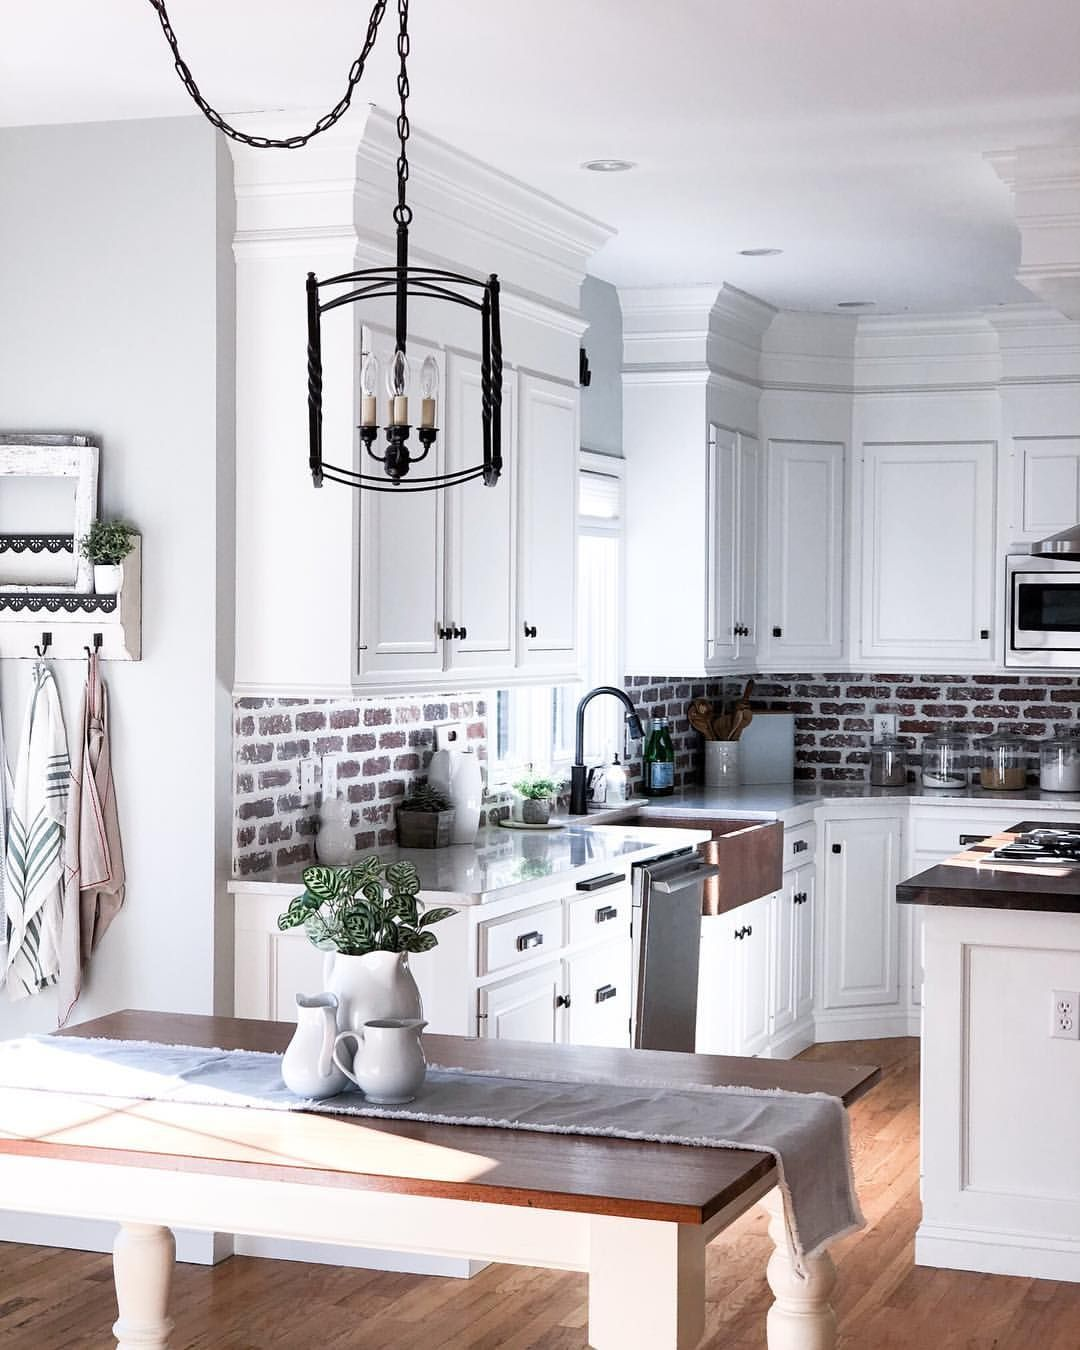 farmhouse kitchen brick backsplash white kitchen kitchen remodel kitchen cabinetry on farmhouse kitchen backsplash id=45249